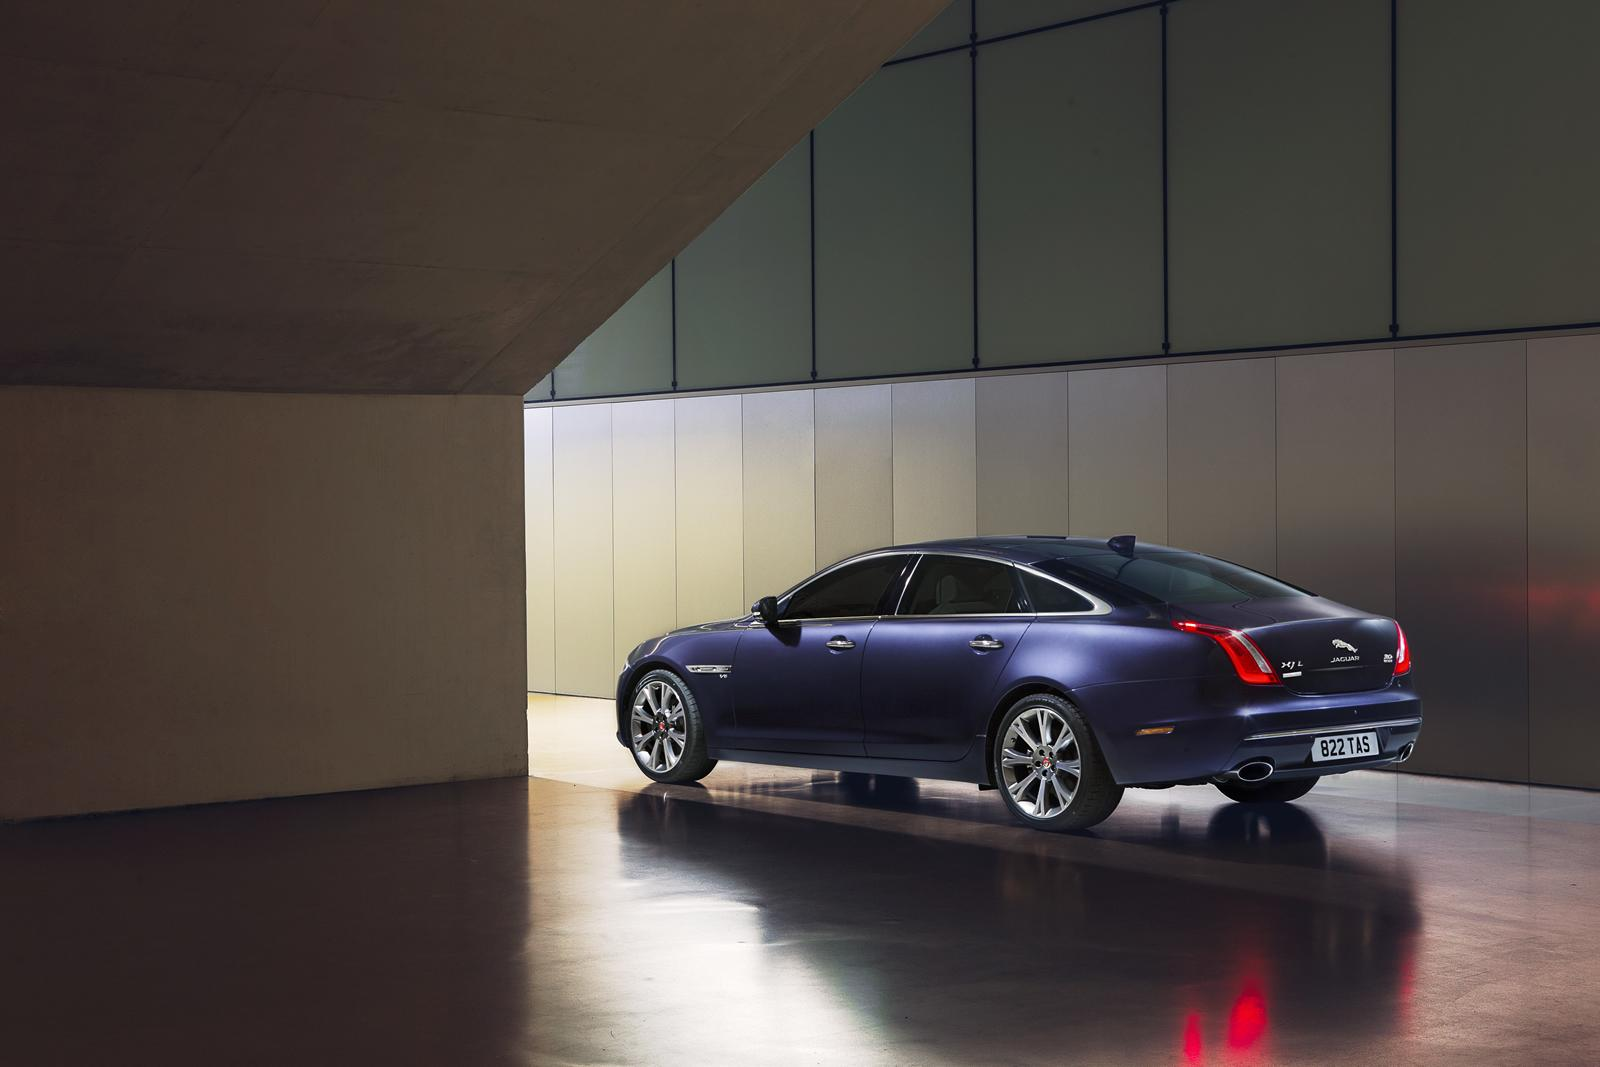 Jaguar XJ 2016 Autobiography back-side view/сзади сбоку